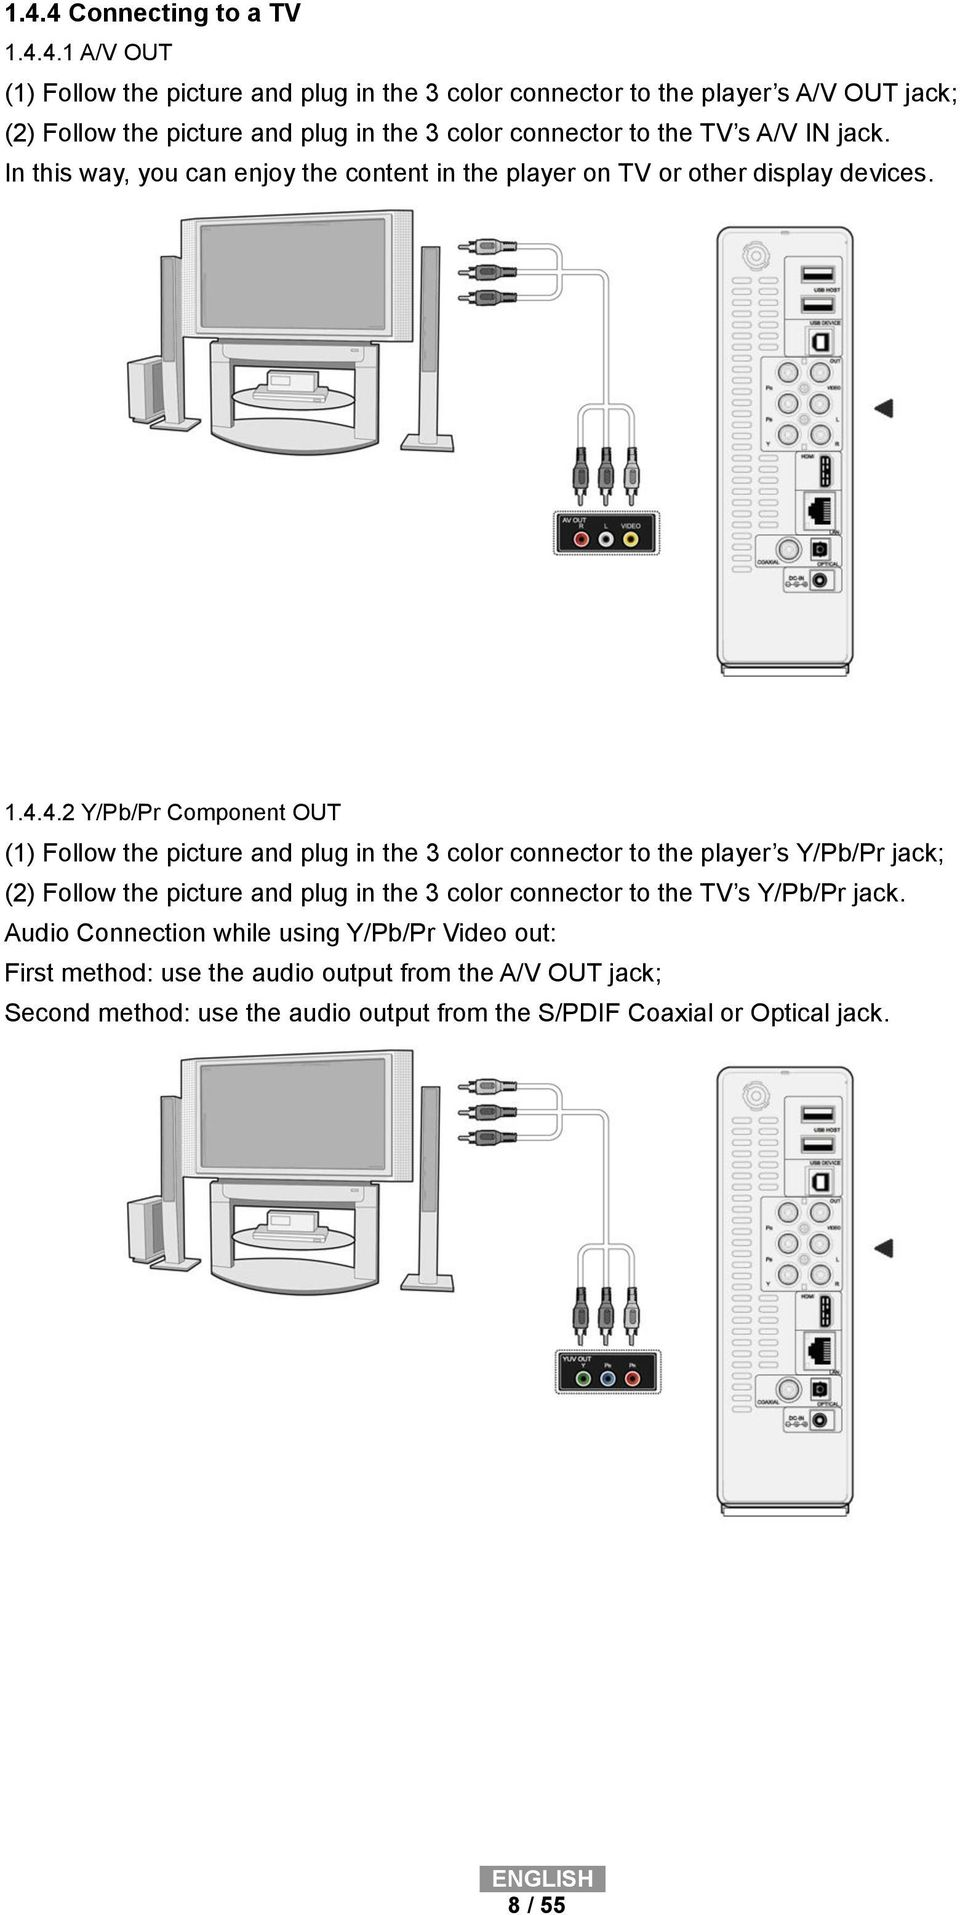 4.2 Y/Pb/Pr Component OUT (1) Follow the picture and plug in the 3 color connector to the player s Y/Pb/Pr jack; (2) Follow the picture and plug in the 3 color connector